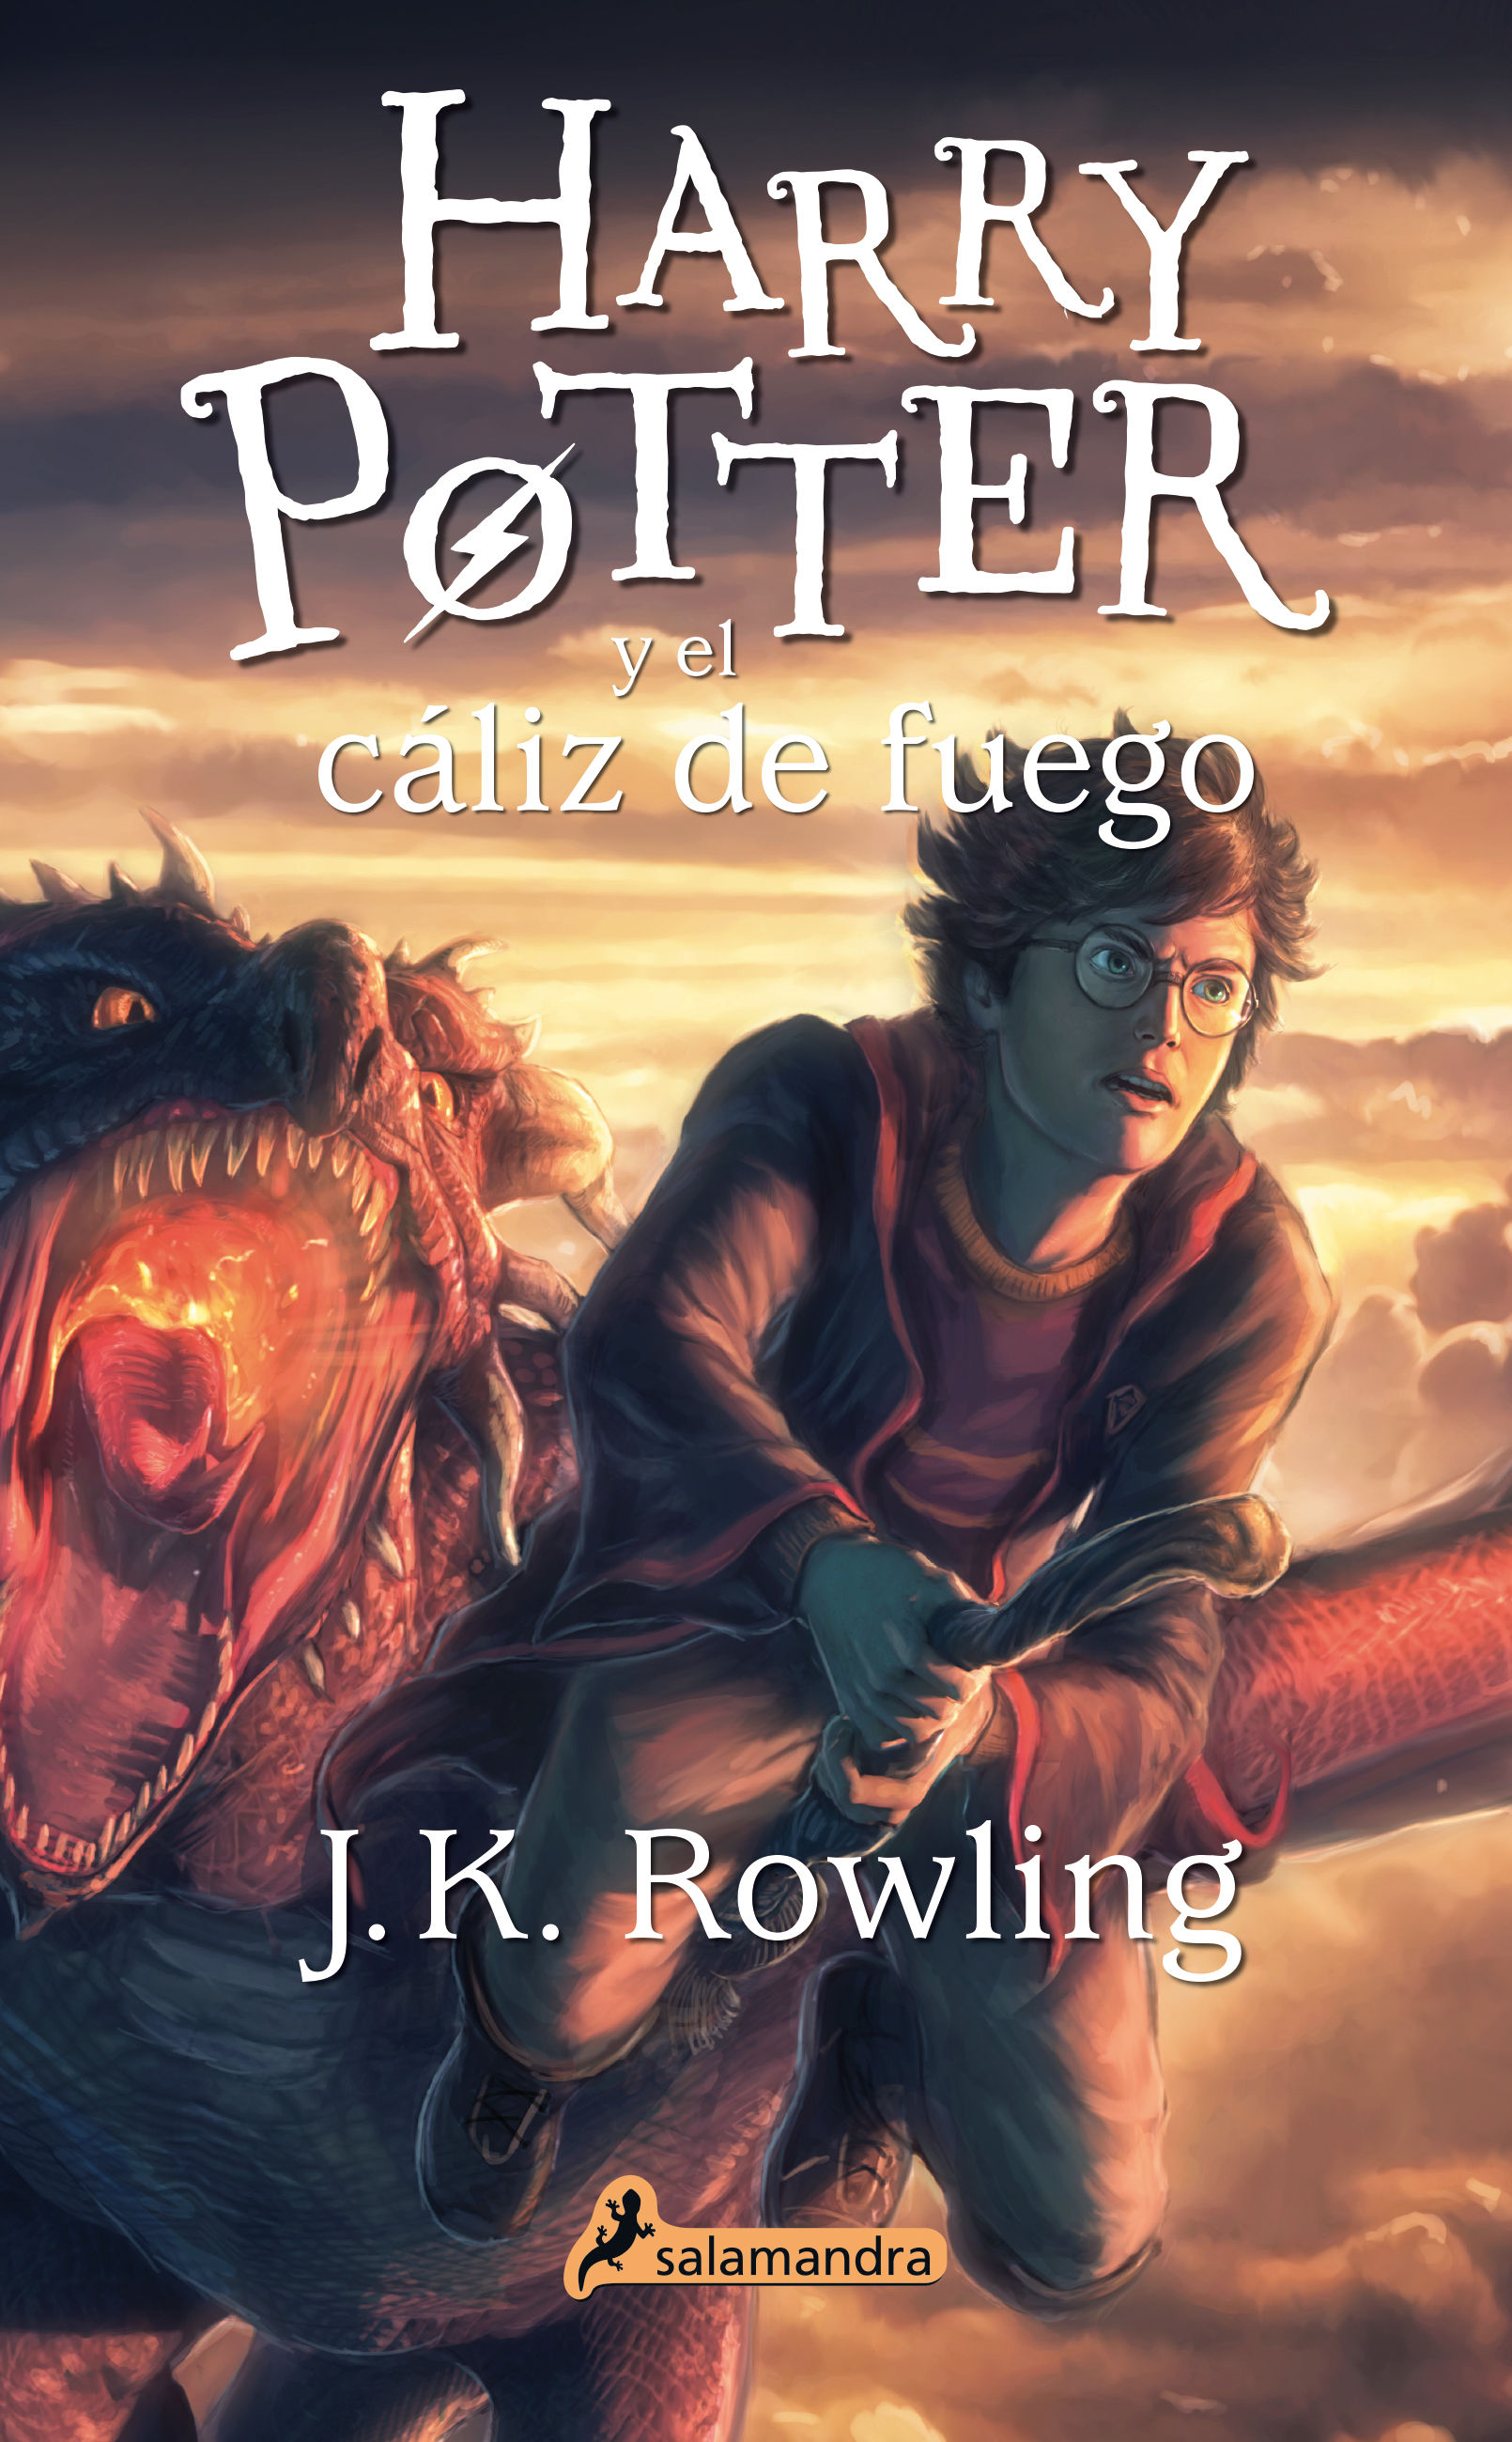 HARRY POTTER Y EL CÁLIZ DE FUEGO (HARRY POTTER 4)